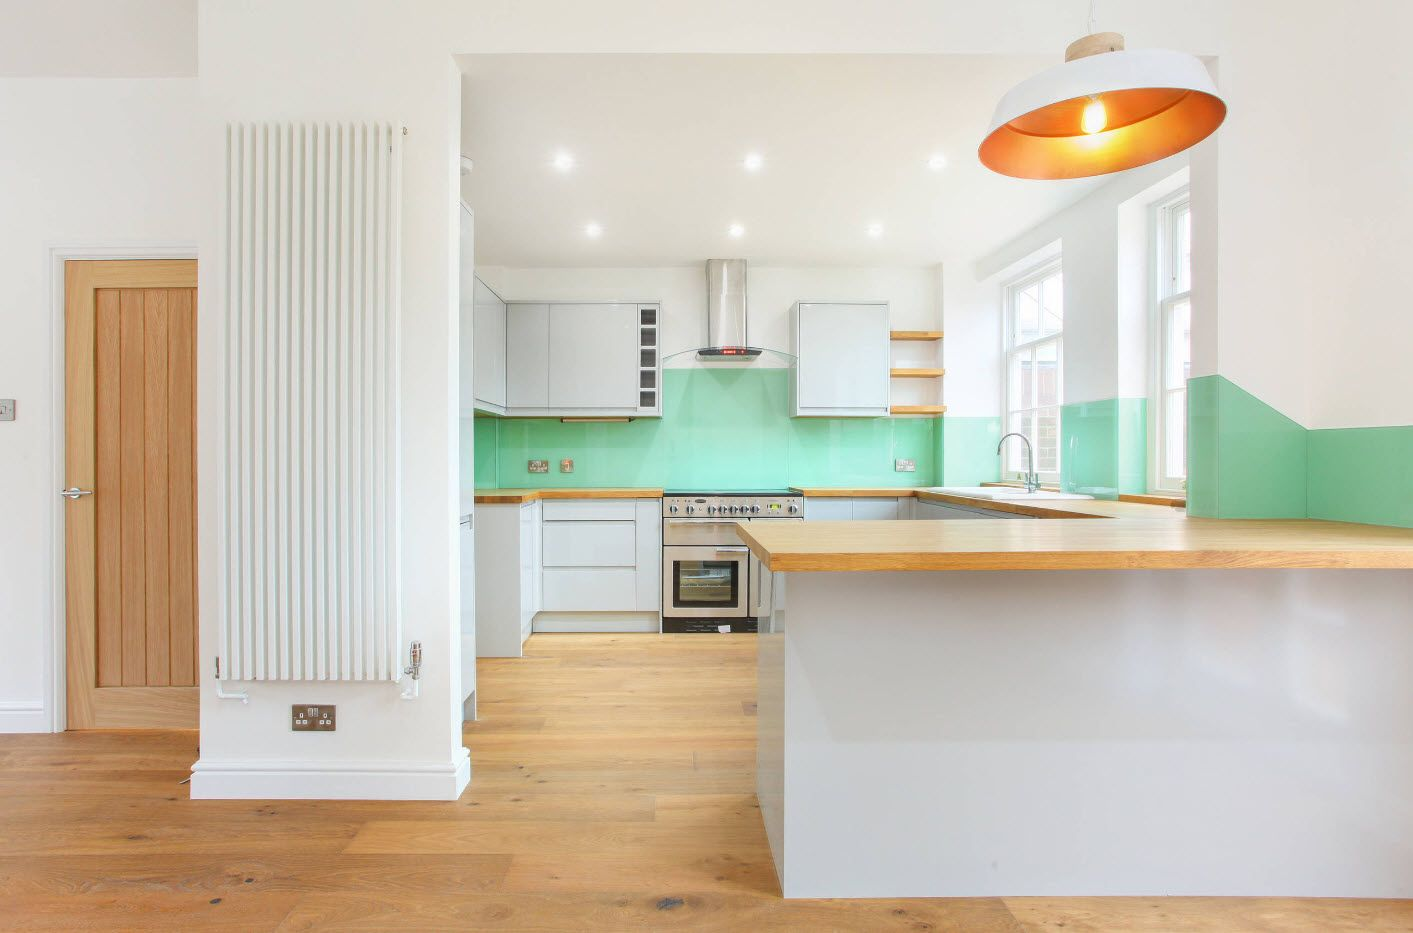 40 Square Feet Kitchen Modern Design Ideas & Layout Types. Absolutely white design and wooden floor and countertop